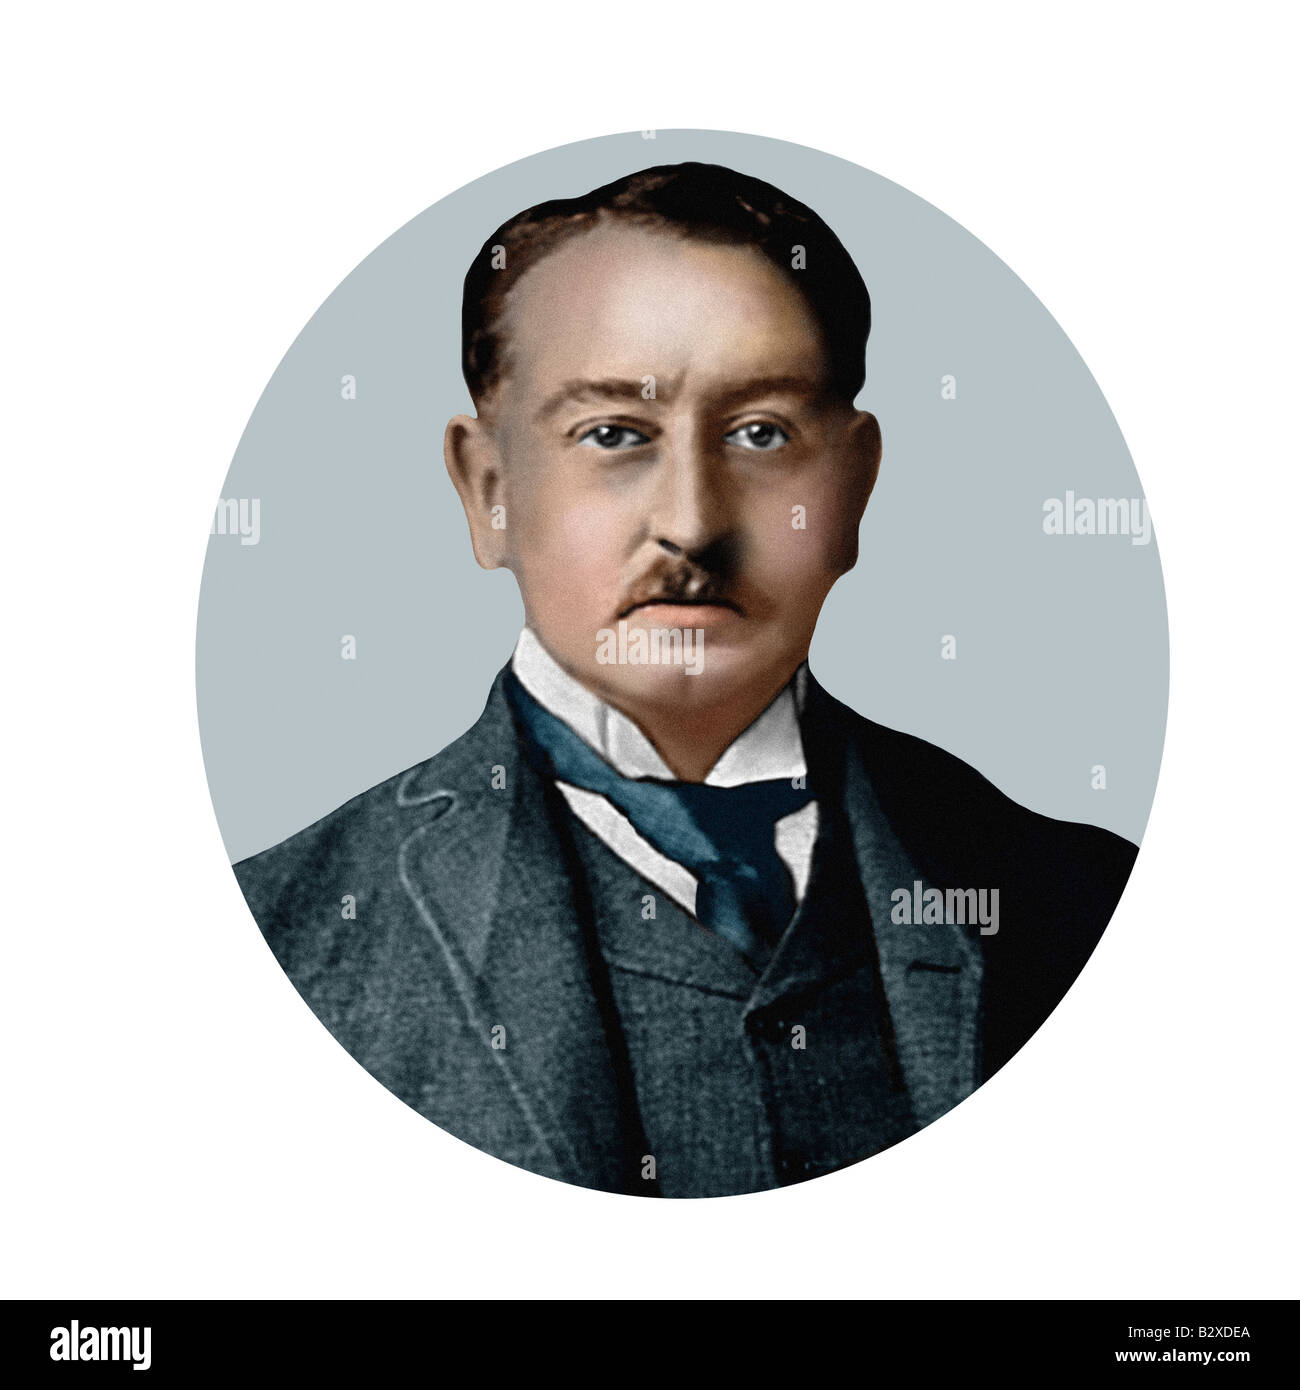 Cecil Rhodes 1853 1902 South African Statesman Modern Illustration from a Cigarette Card - Stock Image